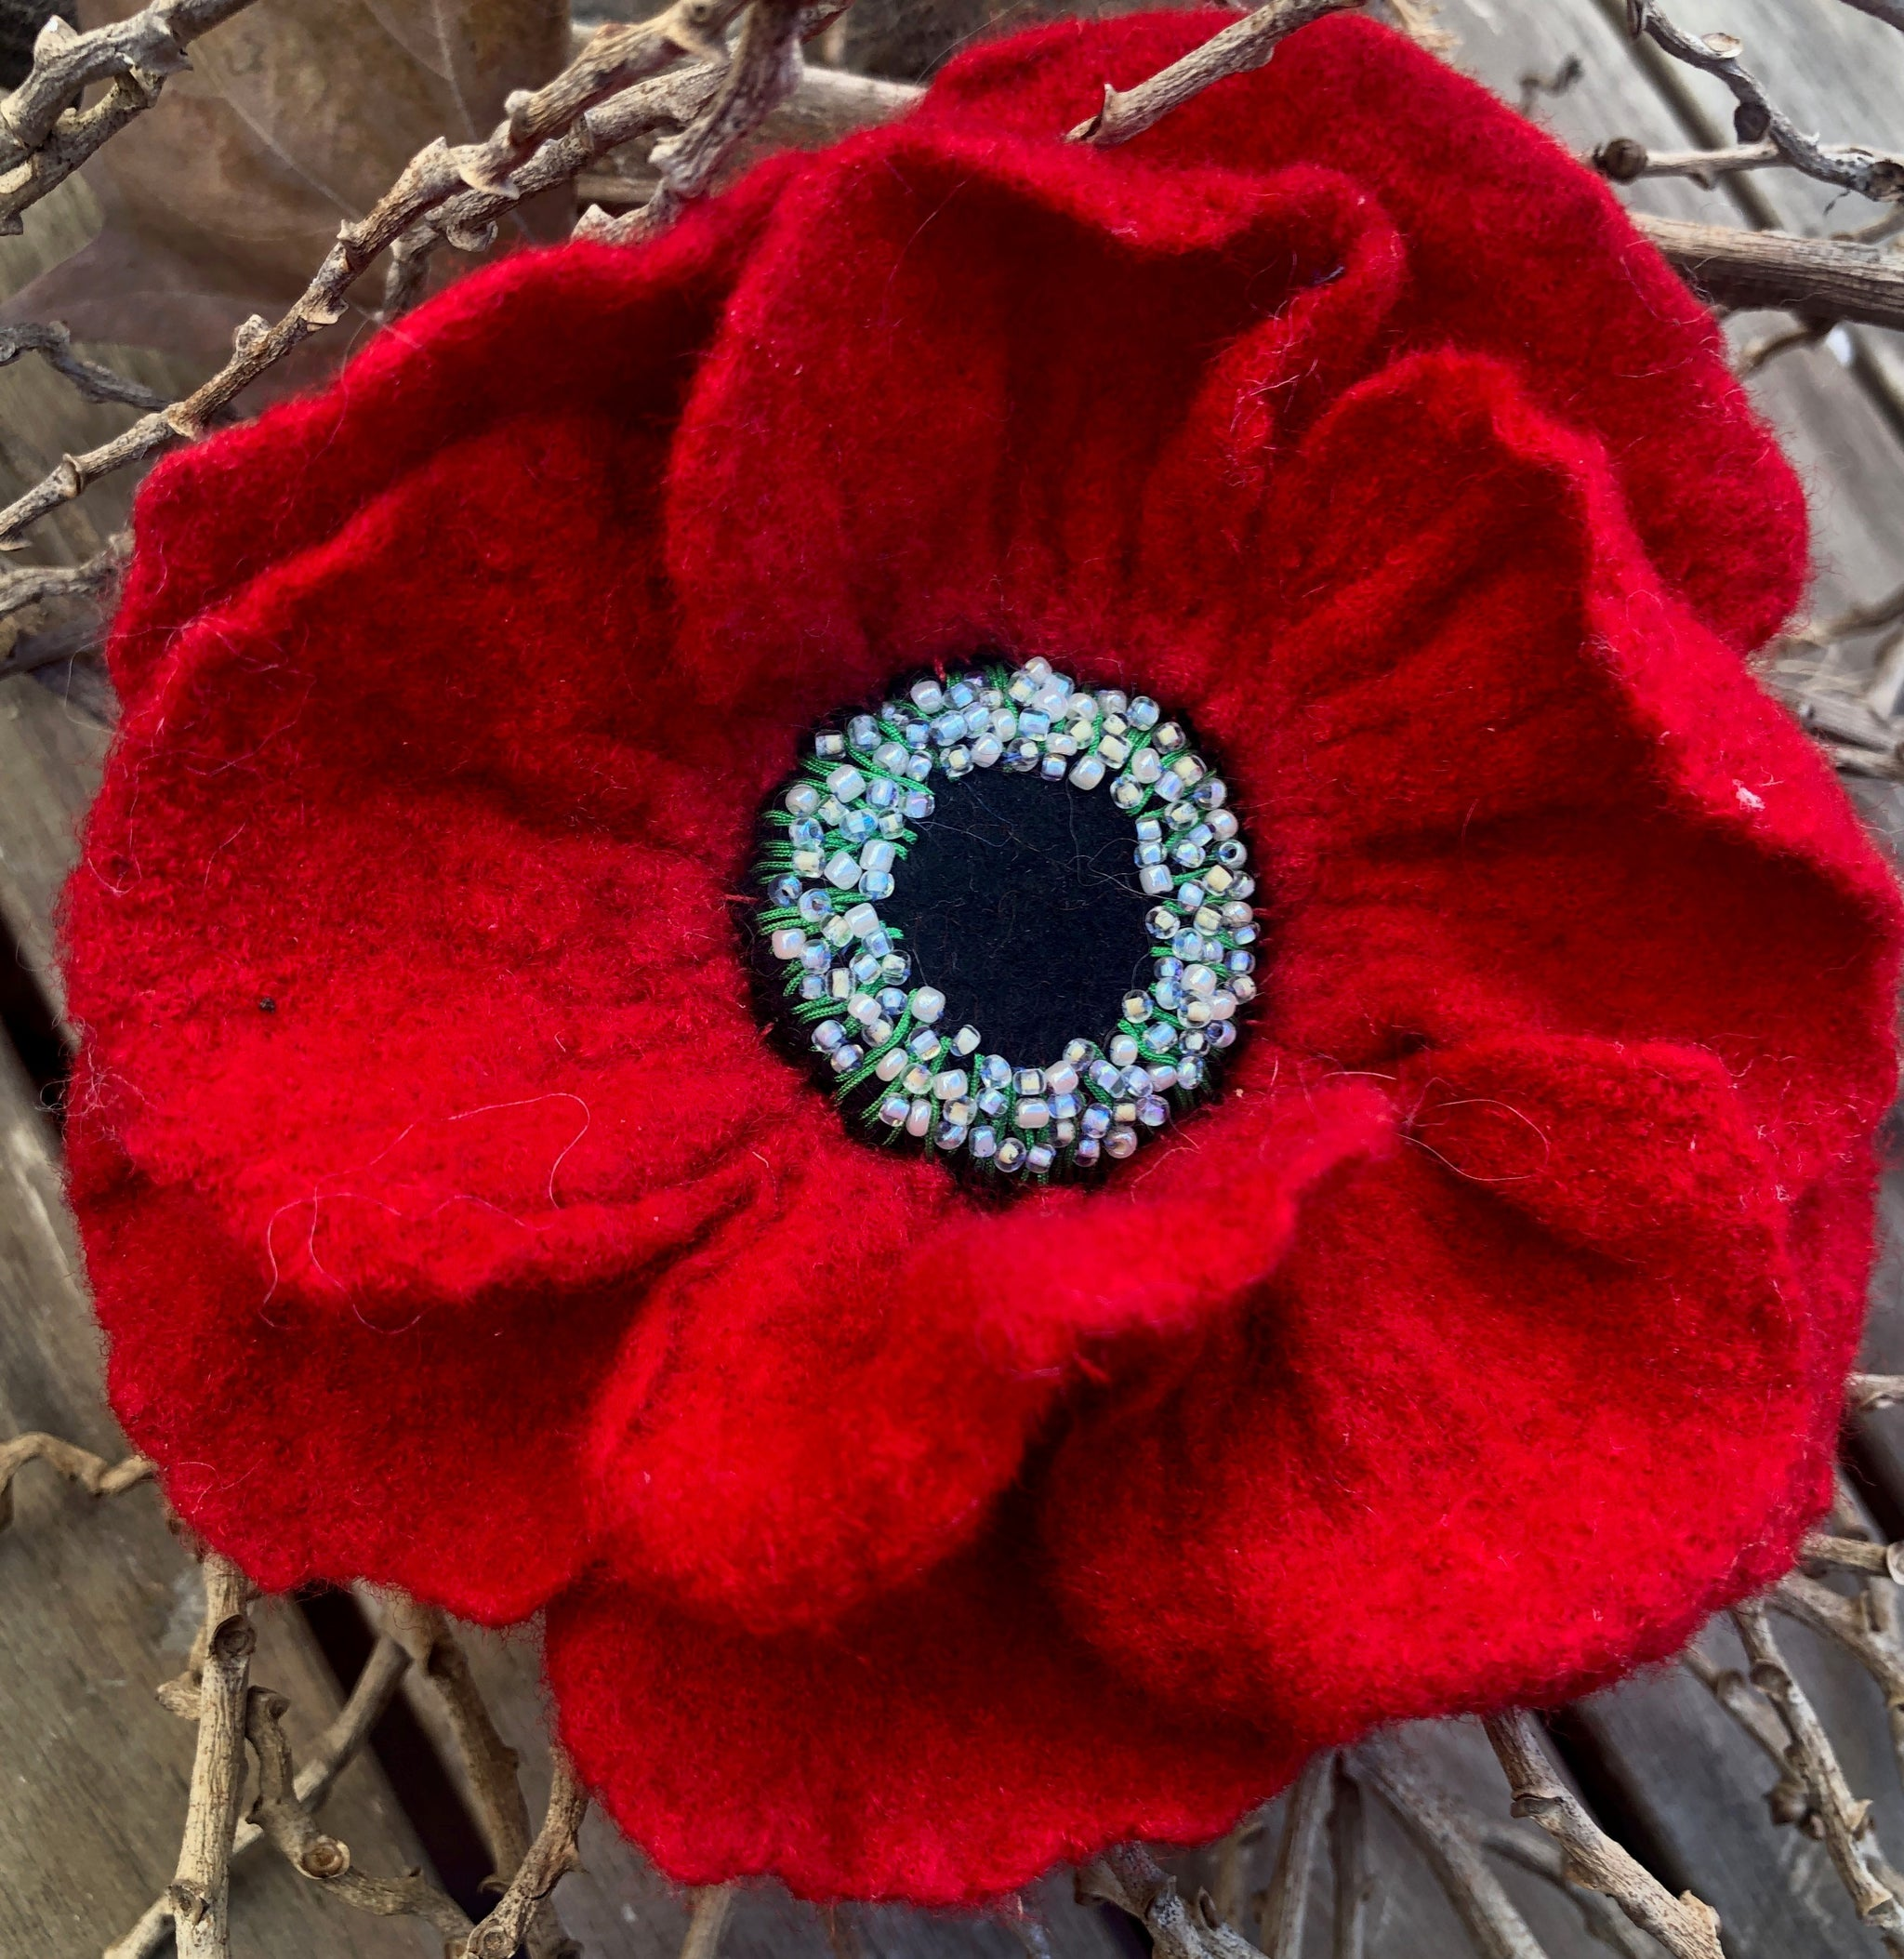 Felted poppy flower by Grace Levis